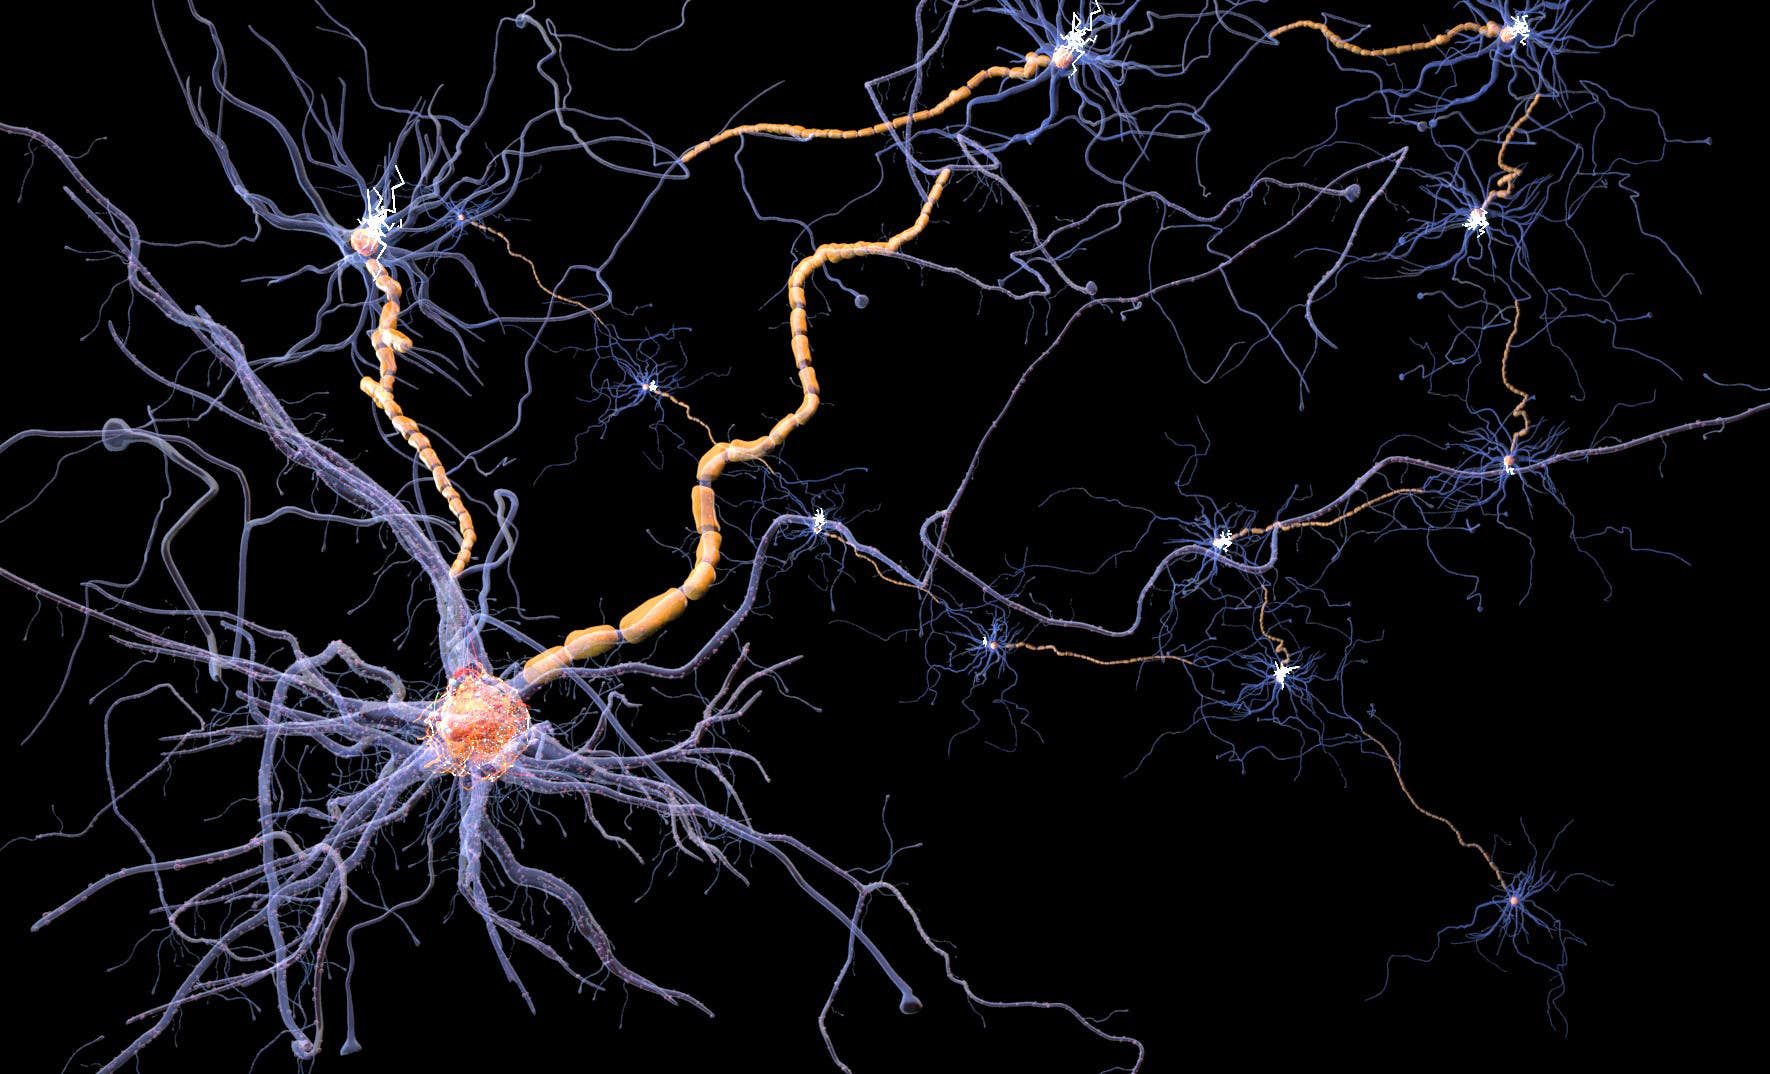 Nerve cells network illustration